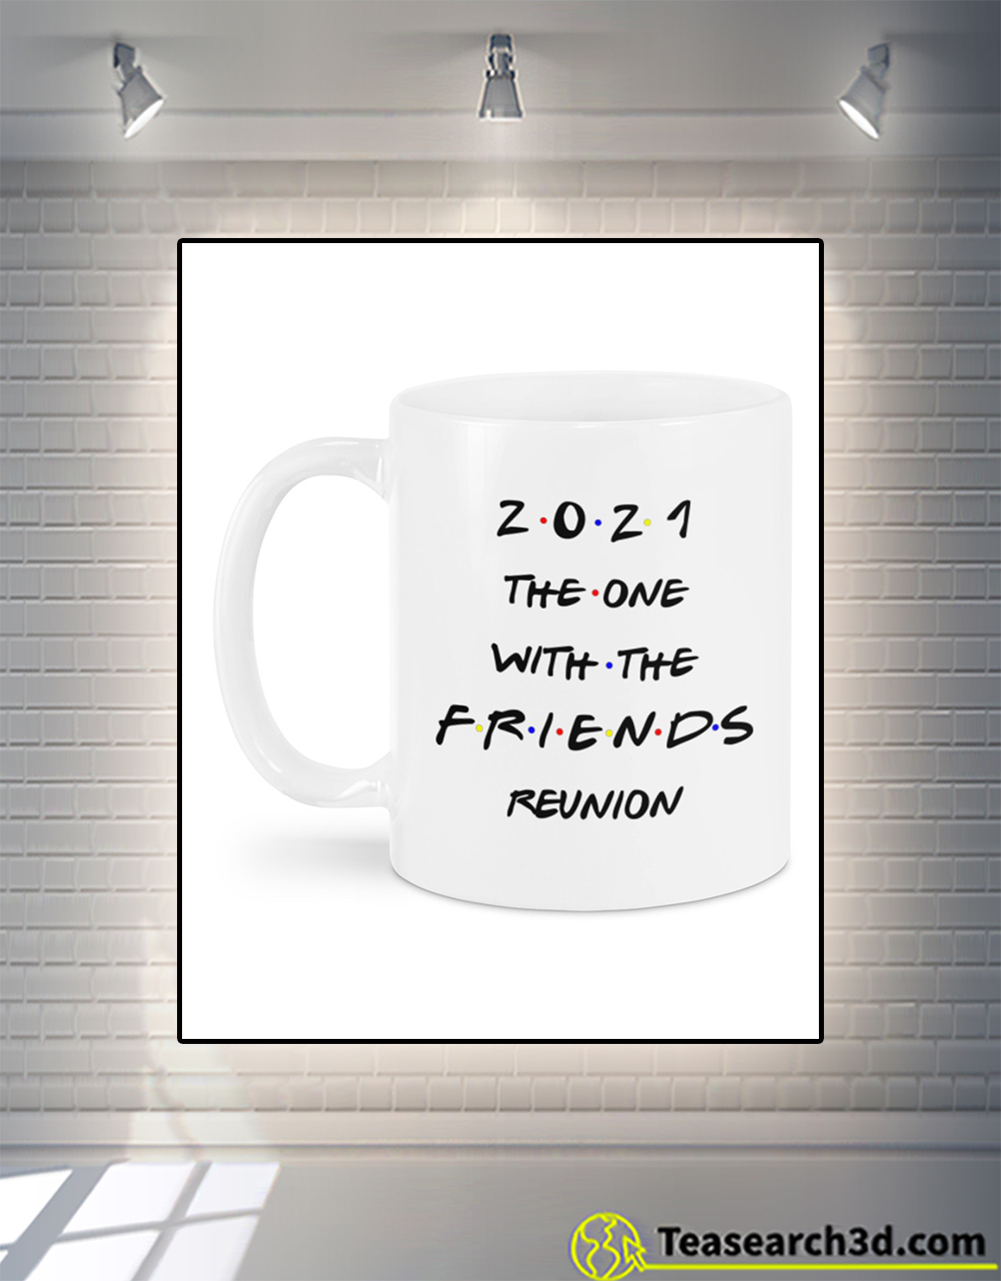 2021 the one with the FRIENDS reunion mug